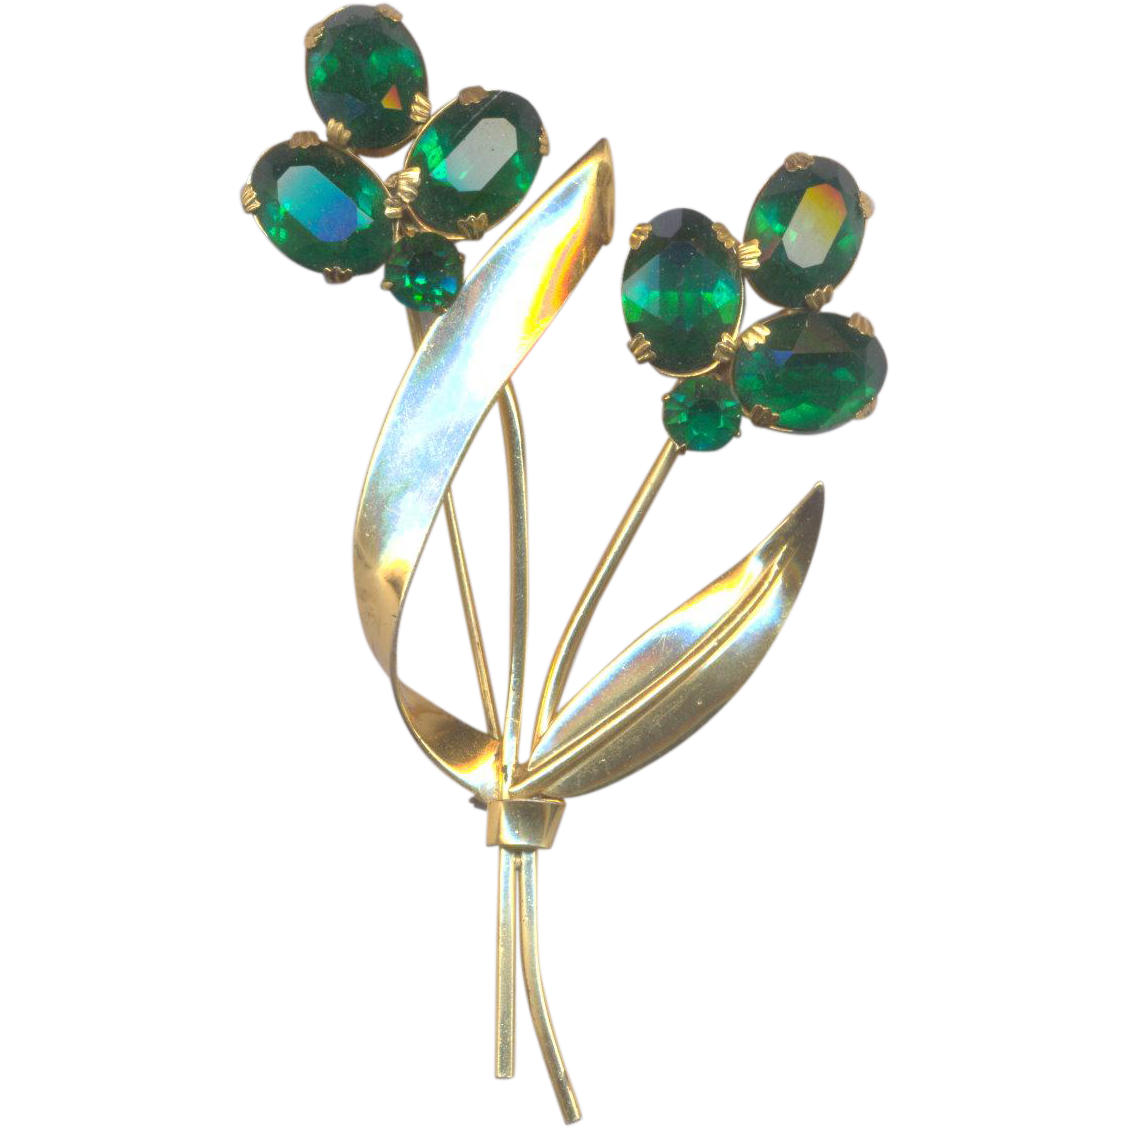 Vintage Coro Craft Sterling Brooch with Emerald Green Rhinestones